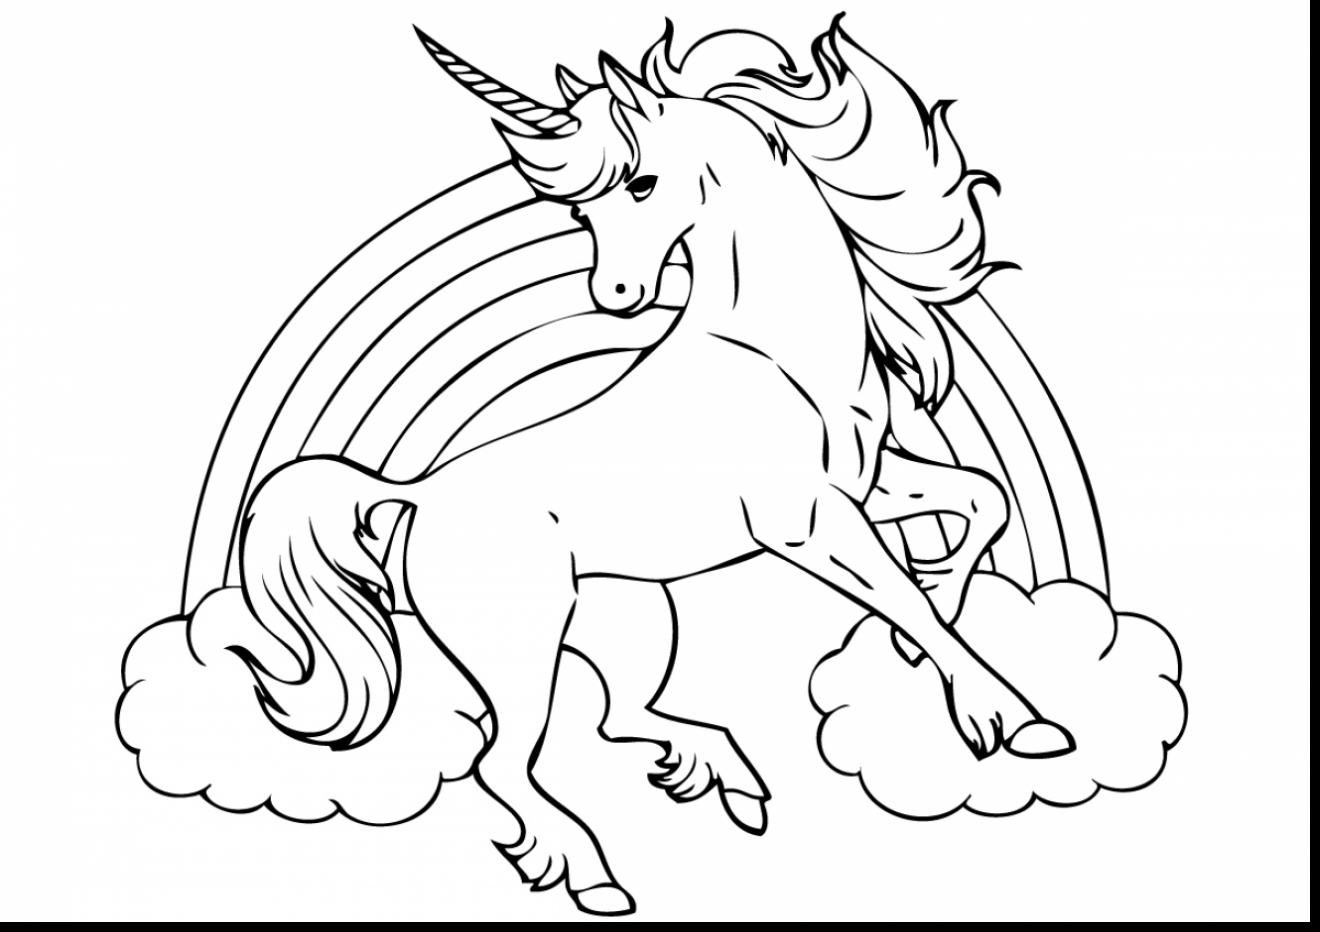 1320x932 Unicorn Coloring Page Exploit Pages For Commonpence Co